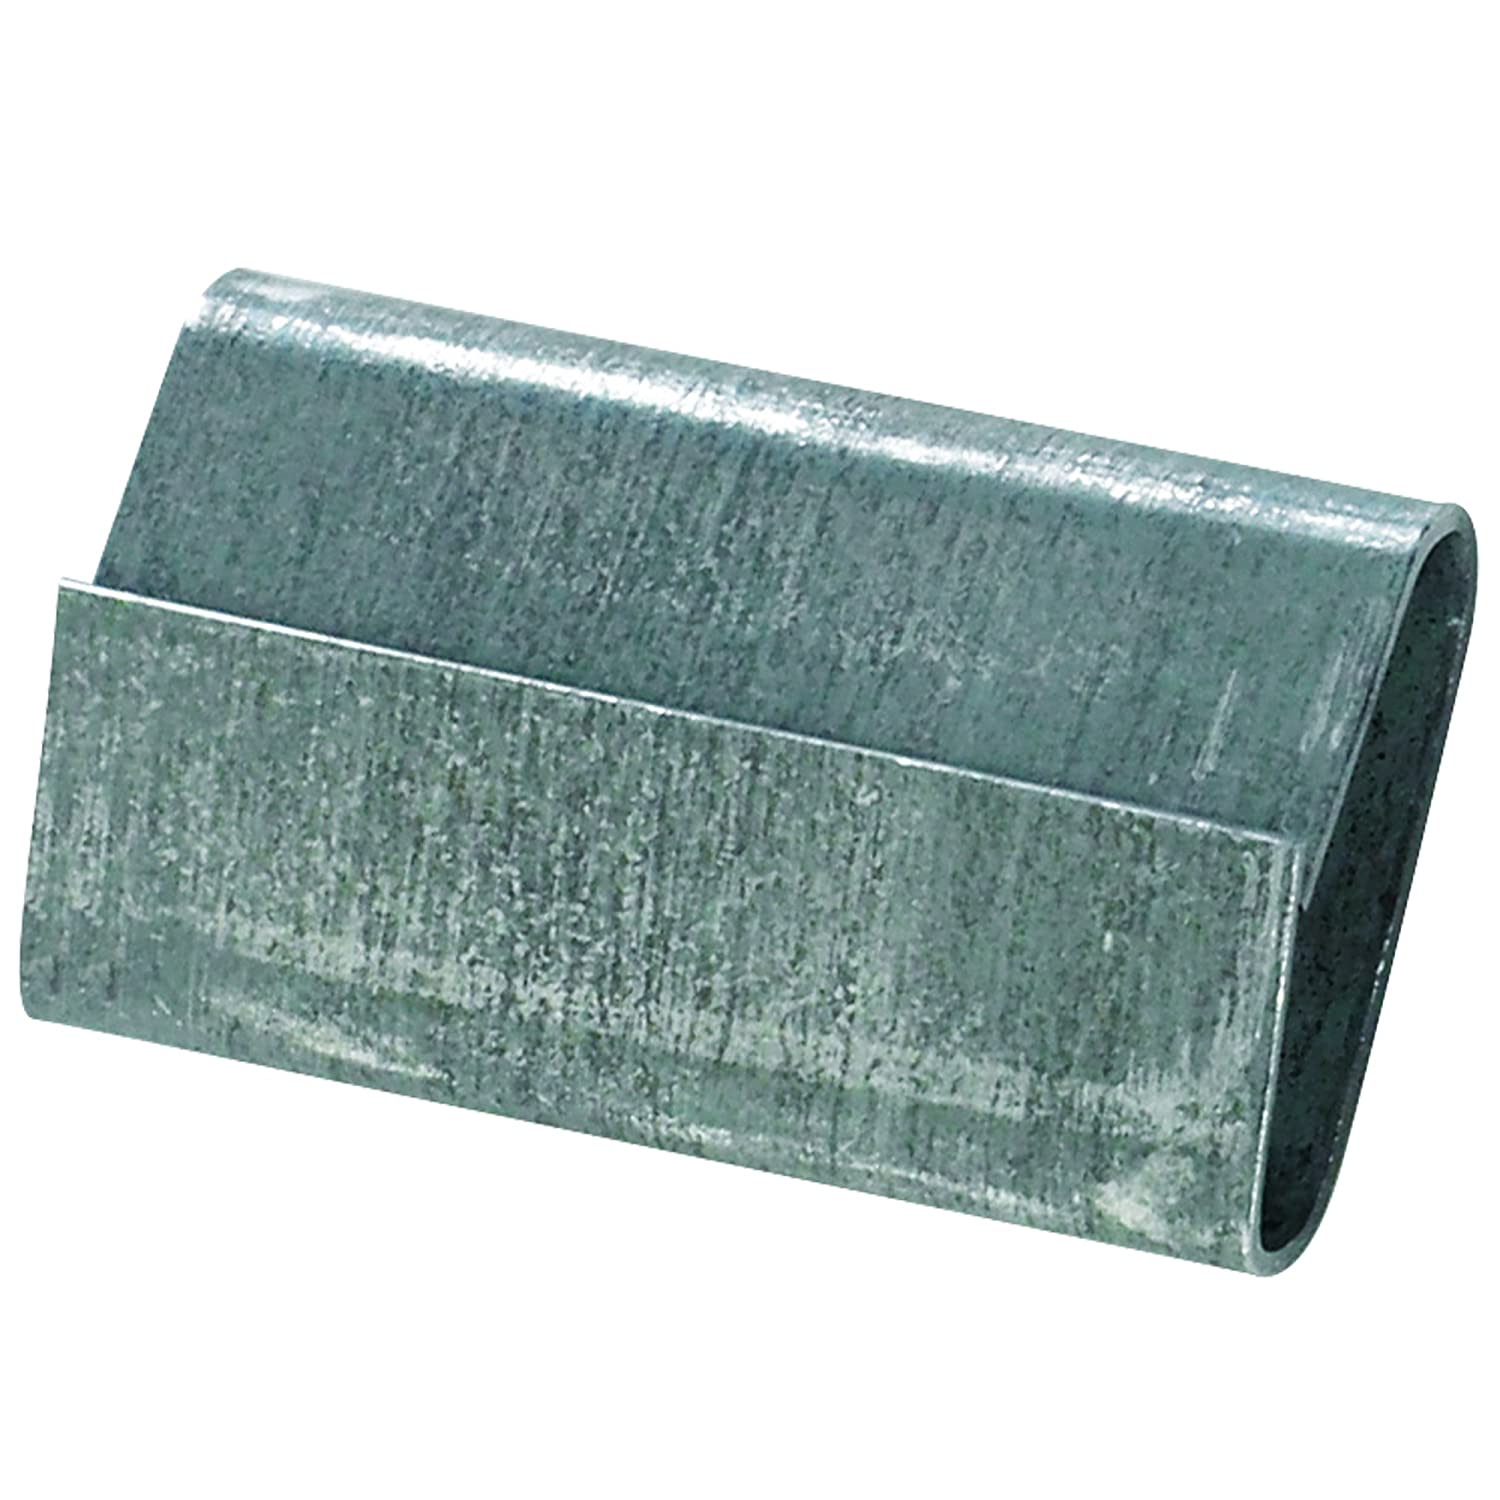 Ship Now Supply SNSS12SEAL Steel Strapping Seals Thread Large discharge Max 63% OFF sale Closed